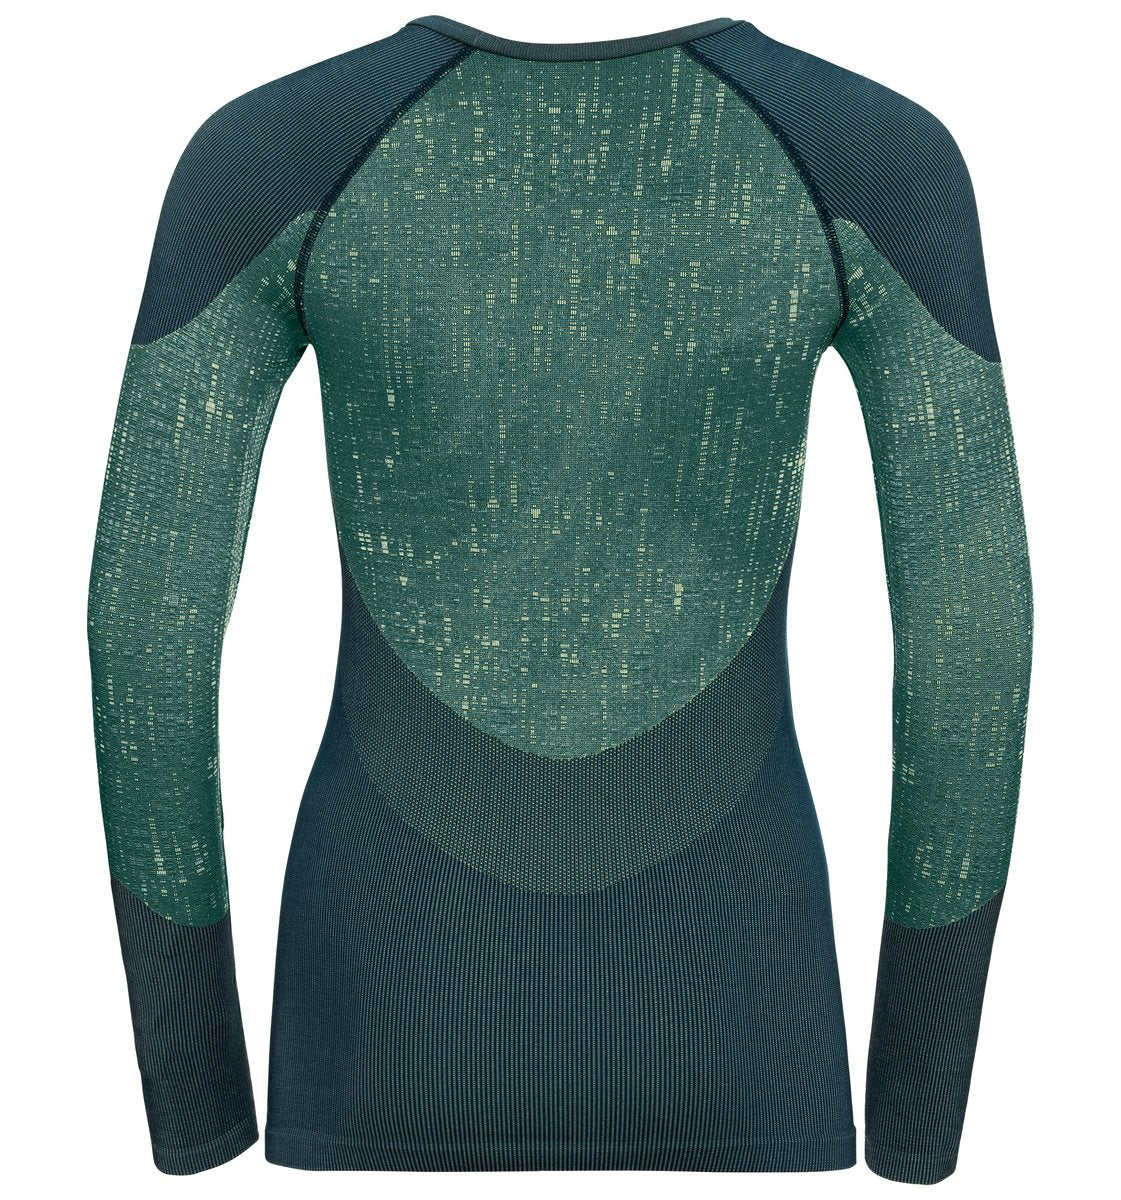 Odlo Women's BLACKCOMB Baselayer Top